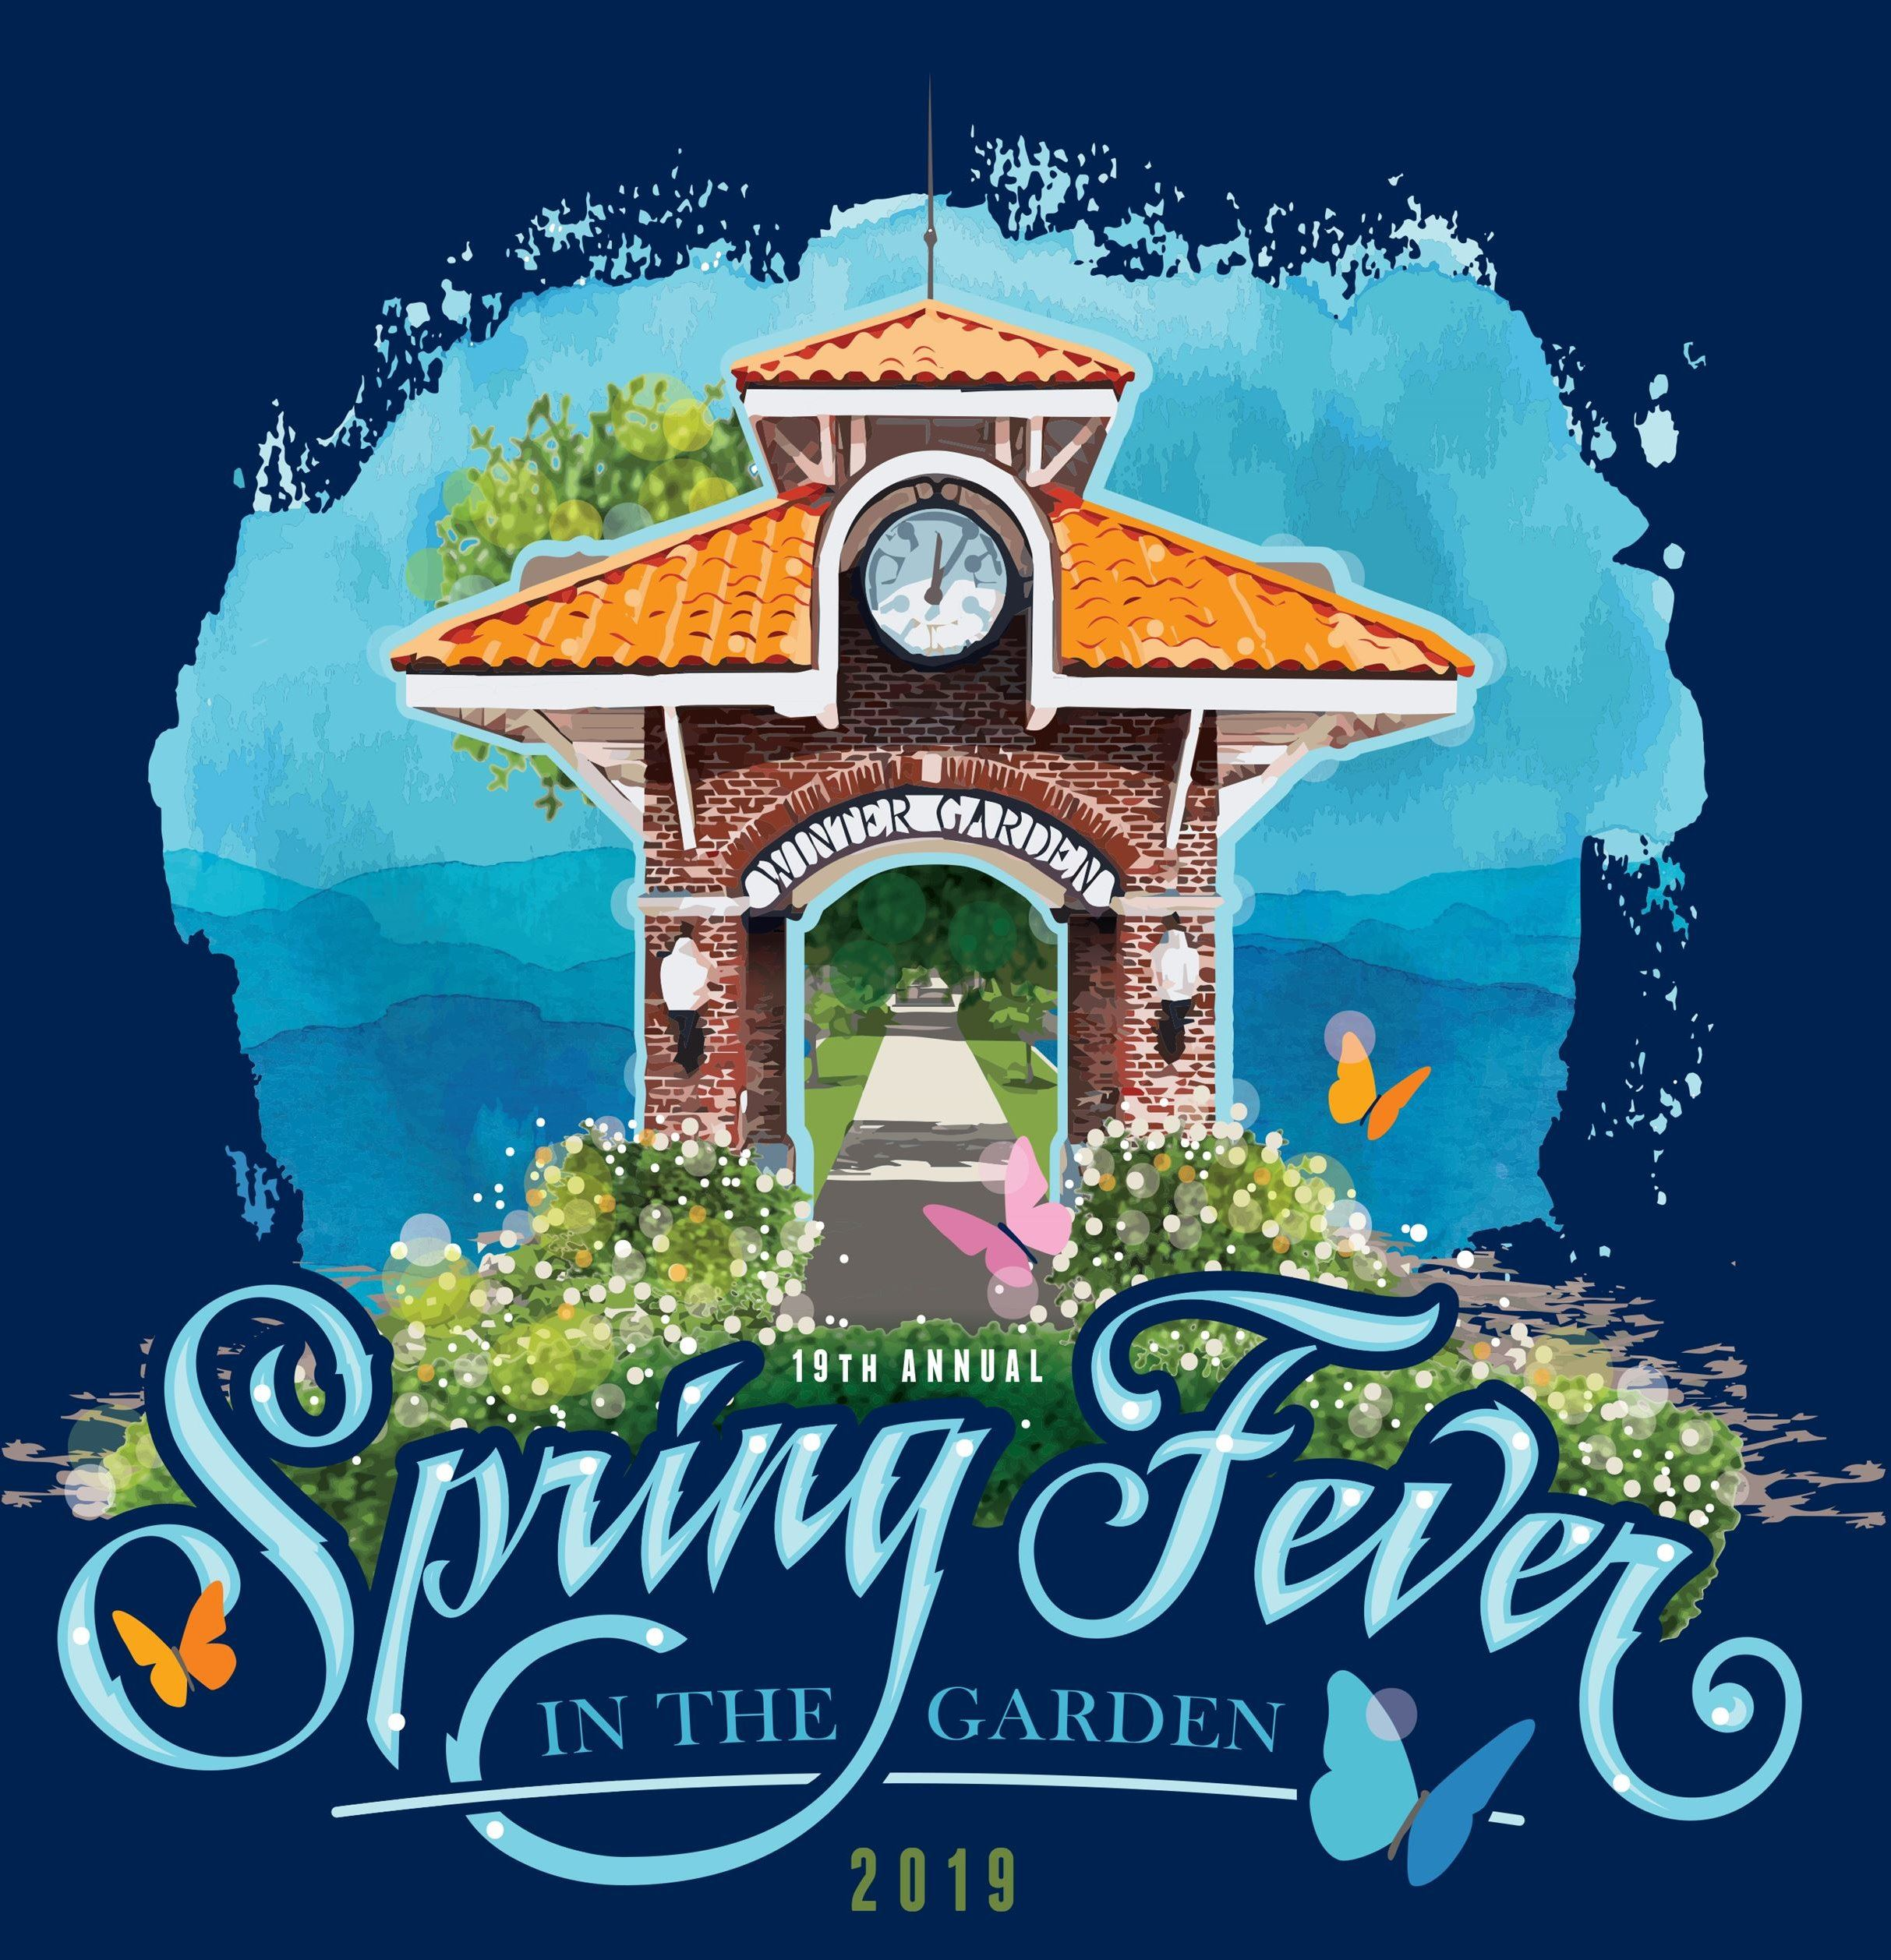 2019 Spring Fever poster of the Downtown Clock Tower